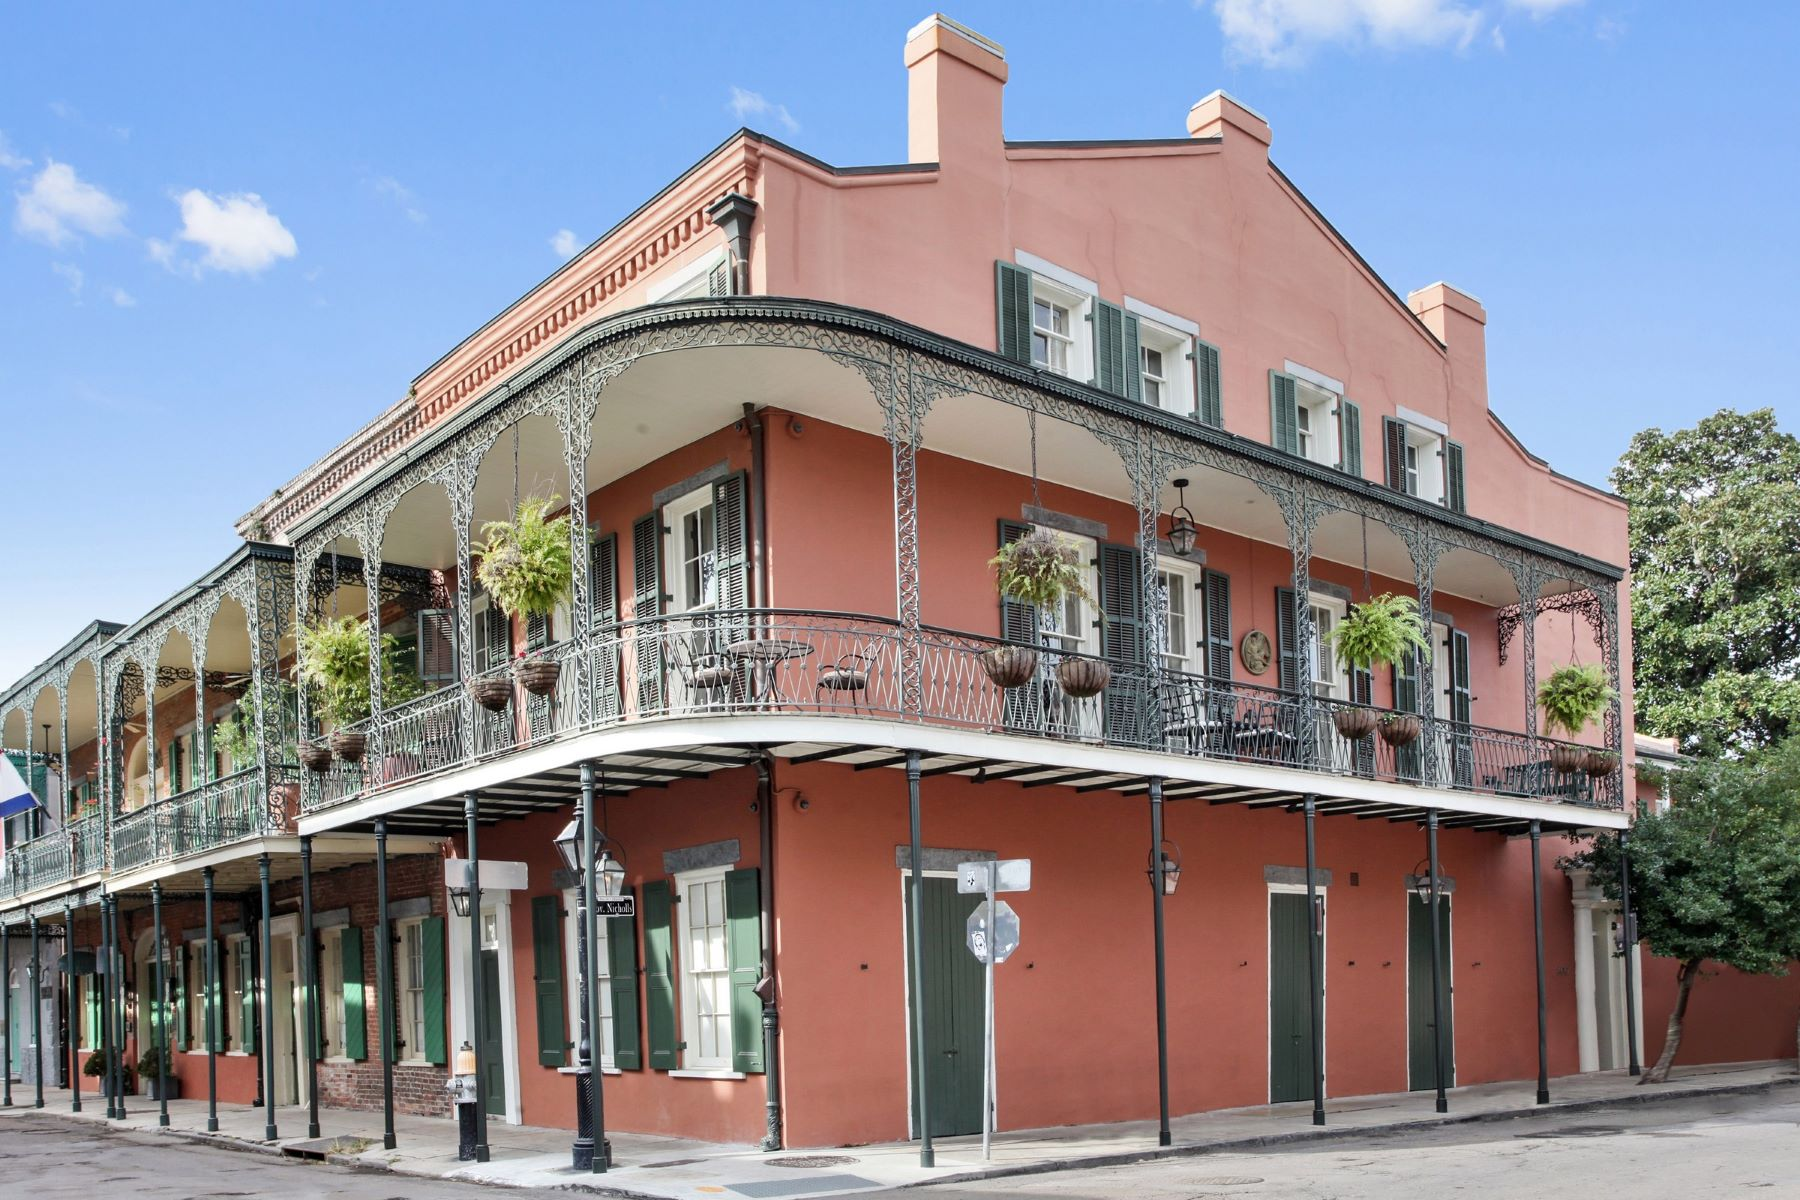 Single Family Homes for Sale at 600 Gov Nicholls Street 600 Gov Nicholls St New Orleans, Louisiana 70116 United States